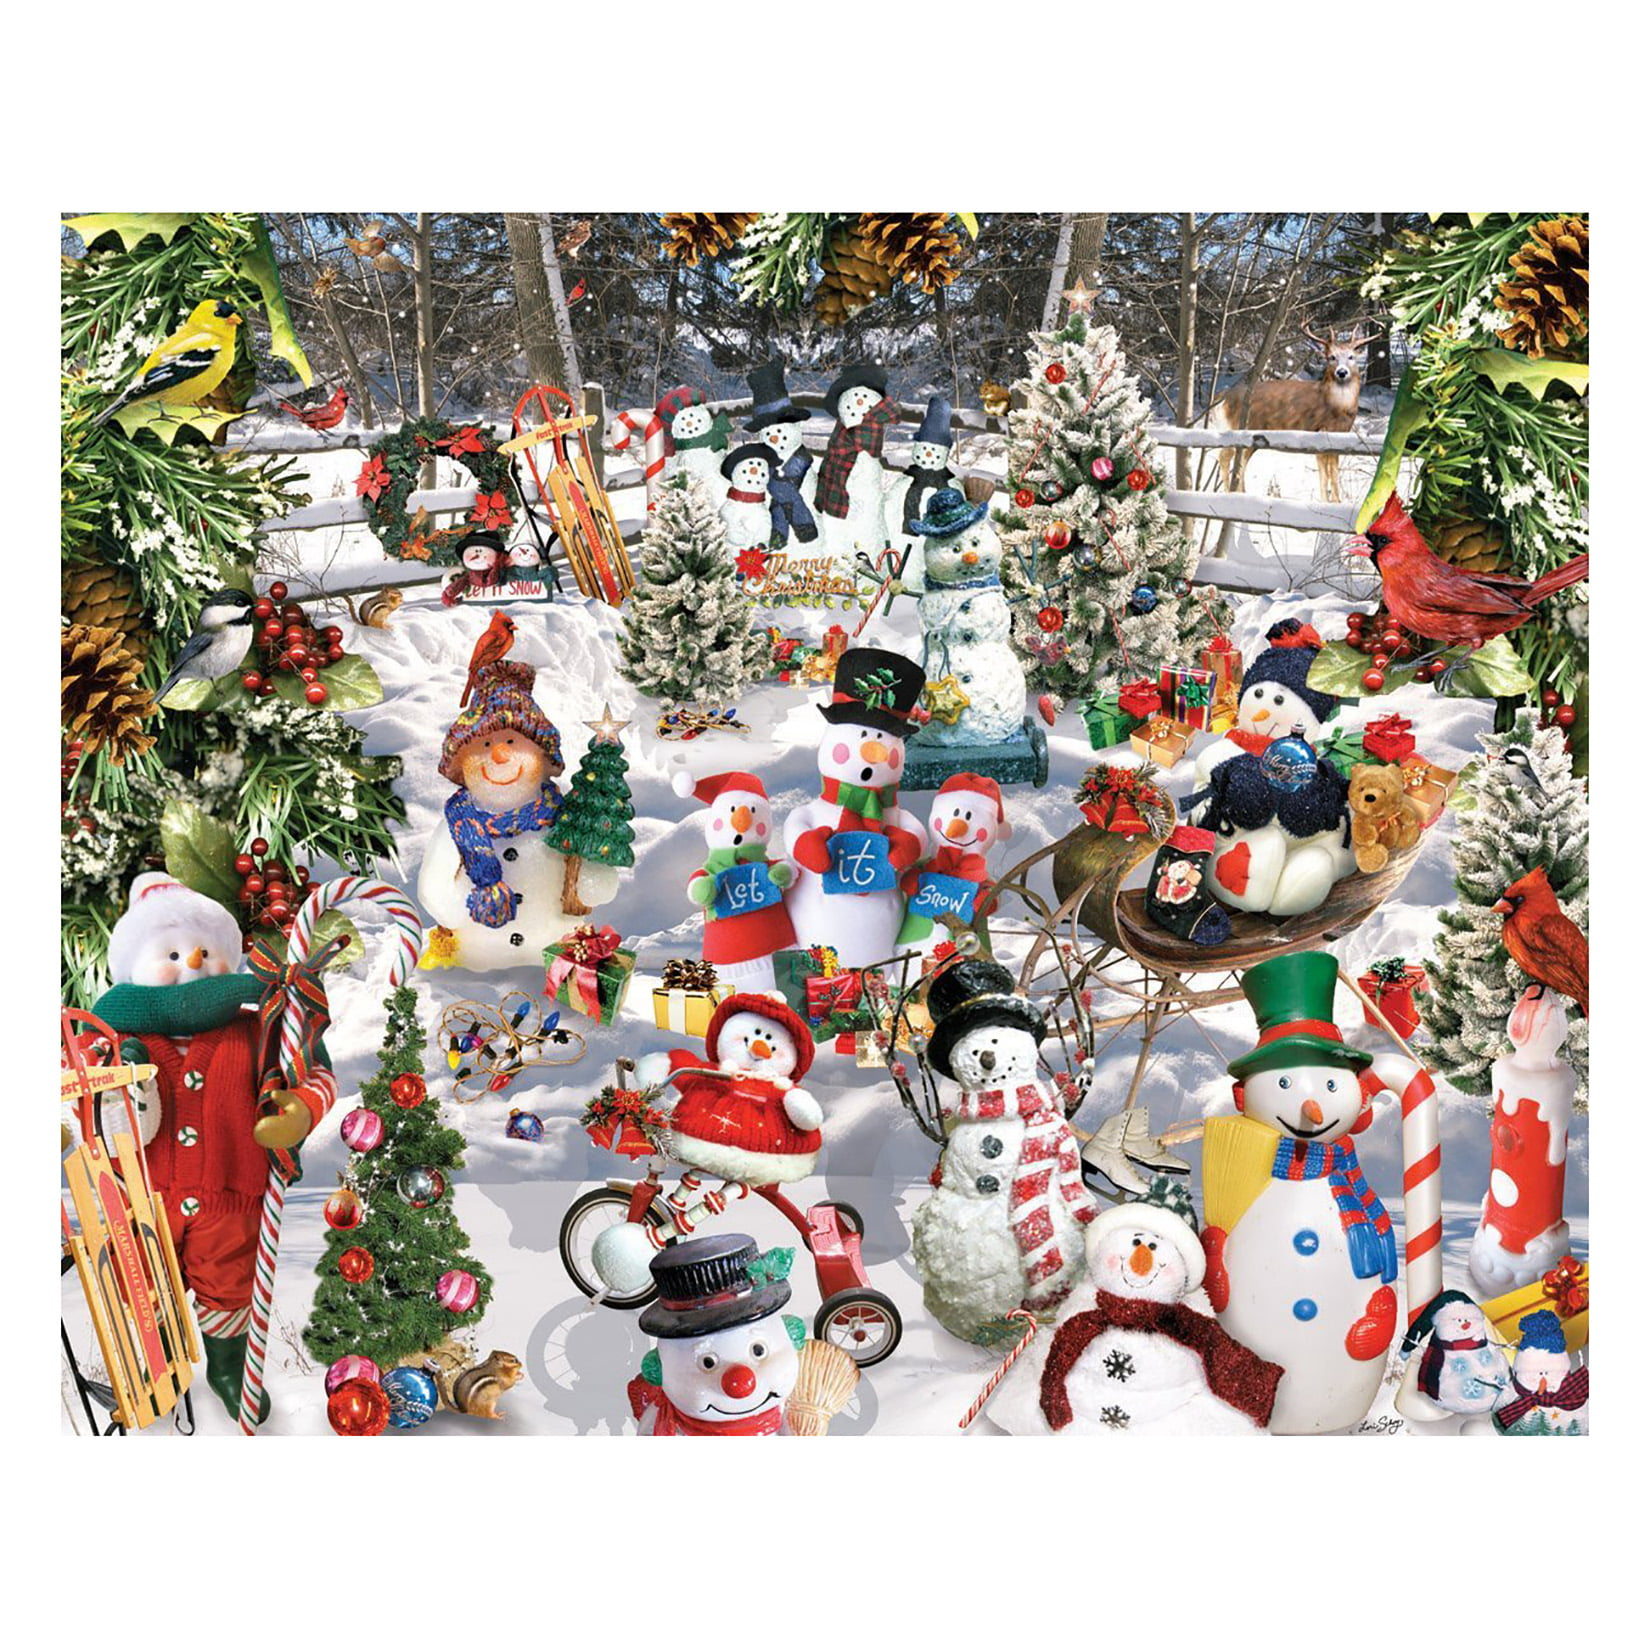 White Mountain Puzzles Snowmen 1000 Piece Jigsaw Puzzle by White Mountain Puzzles